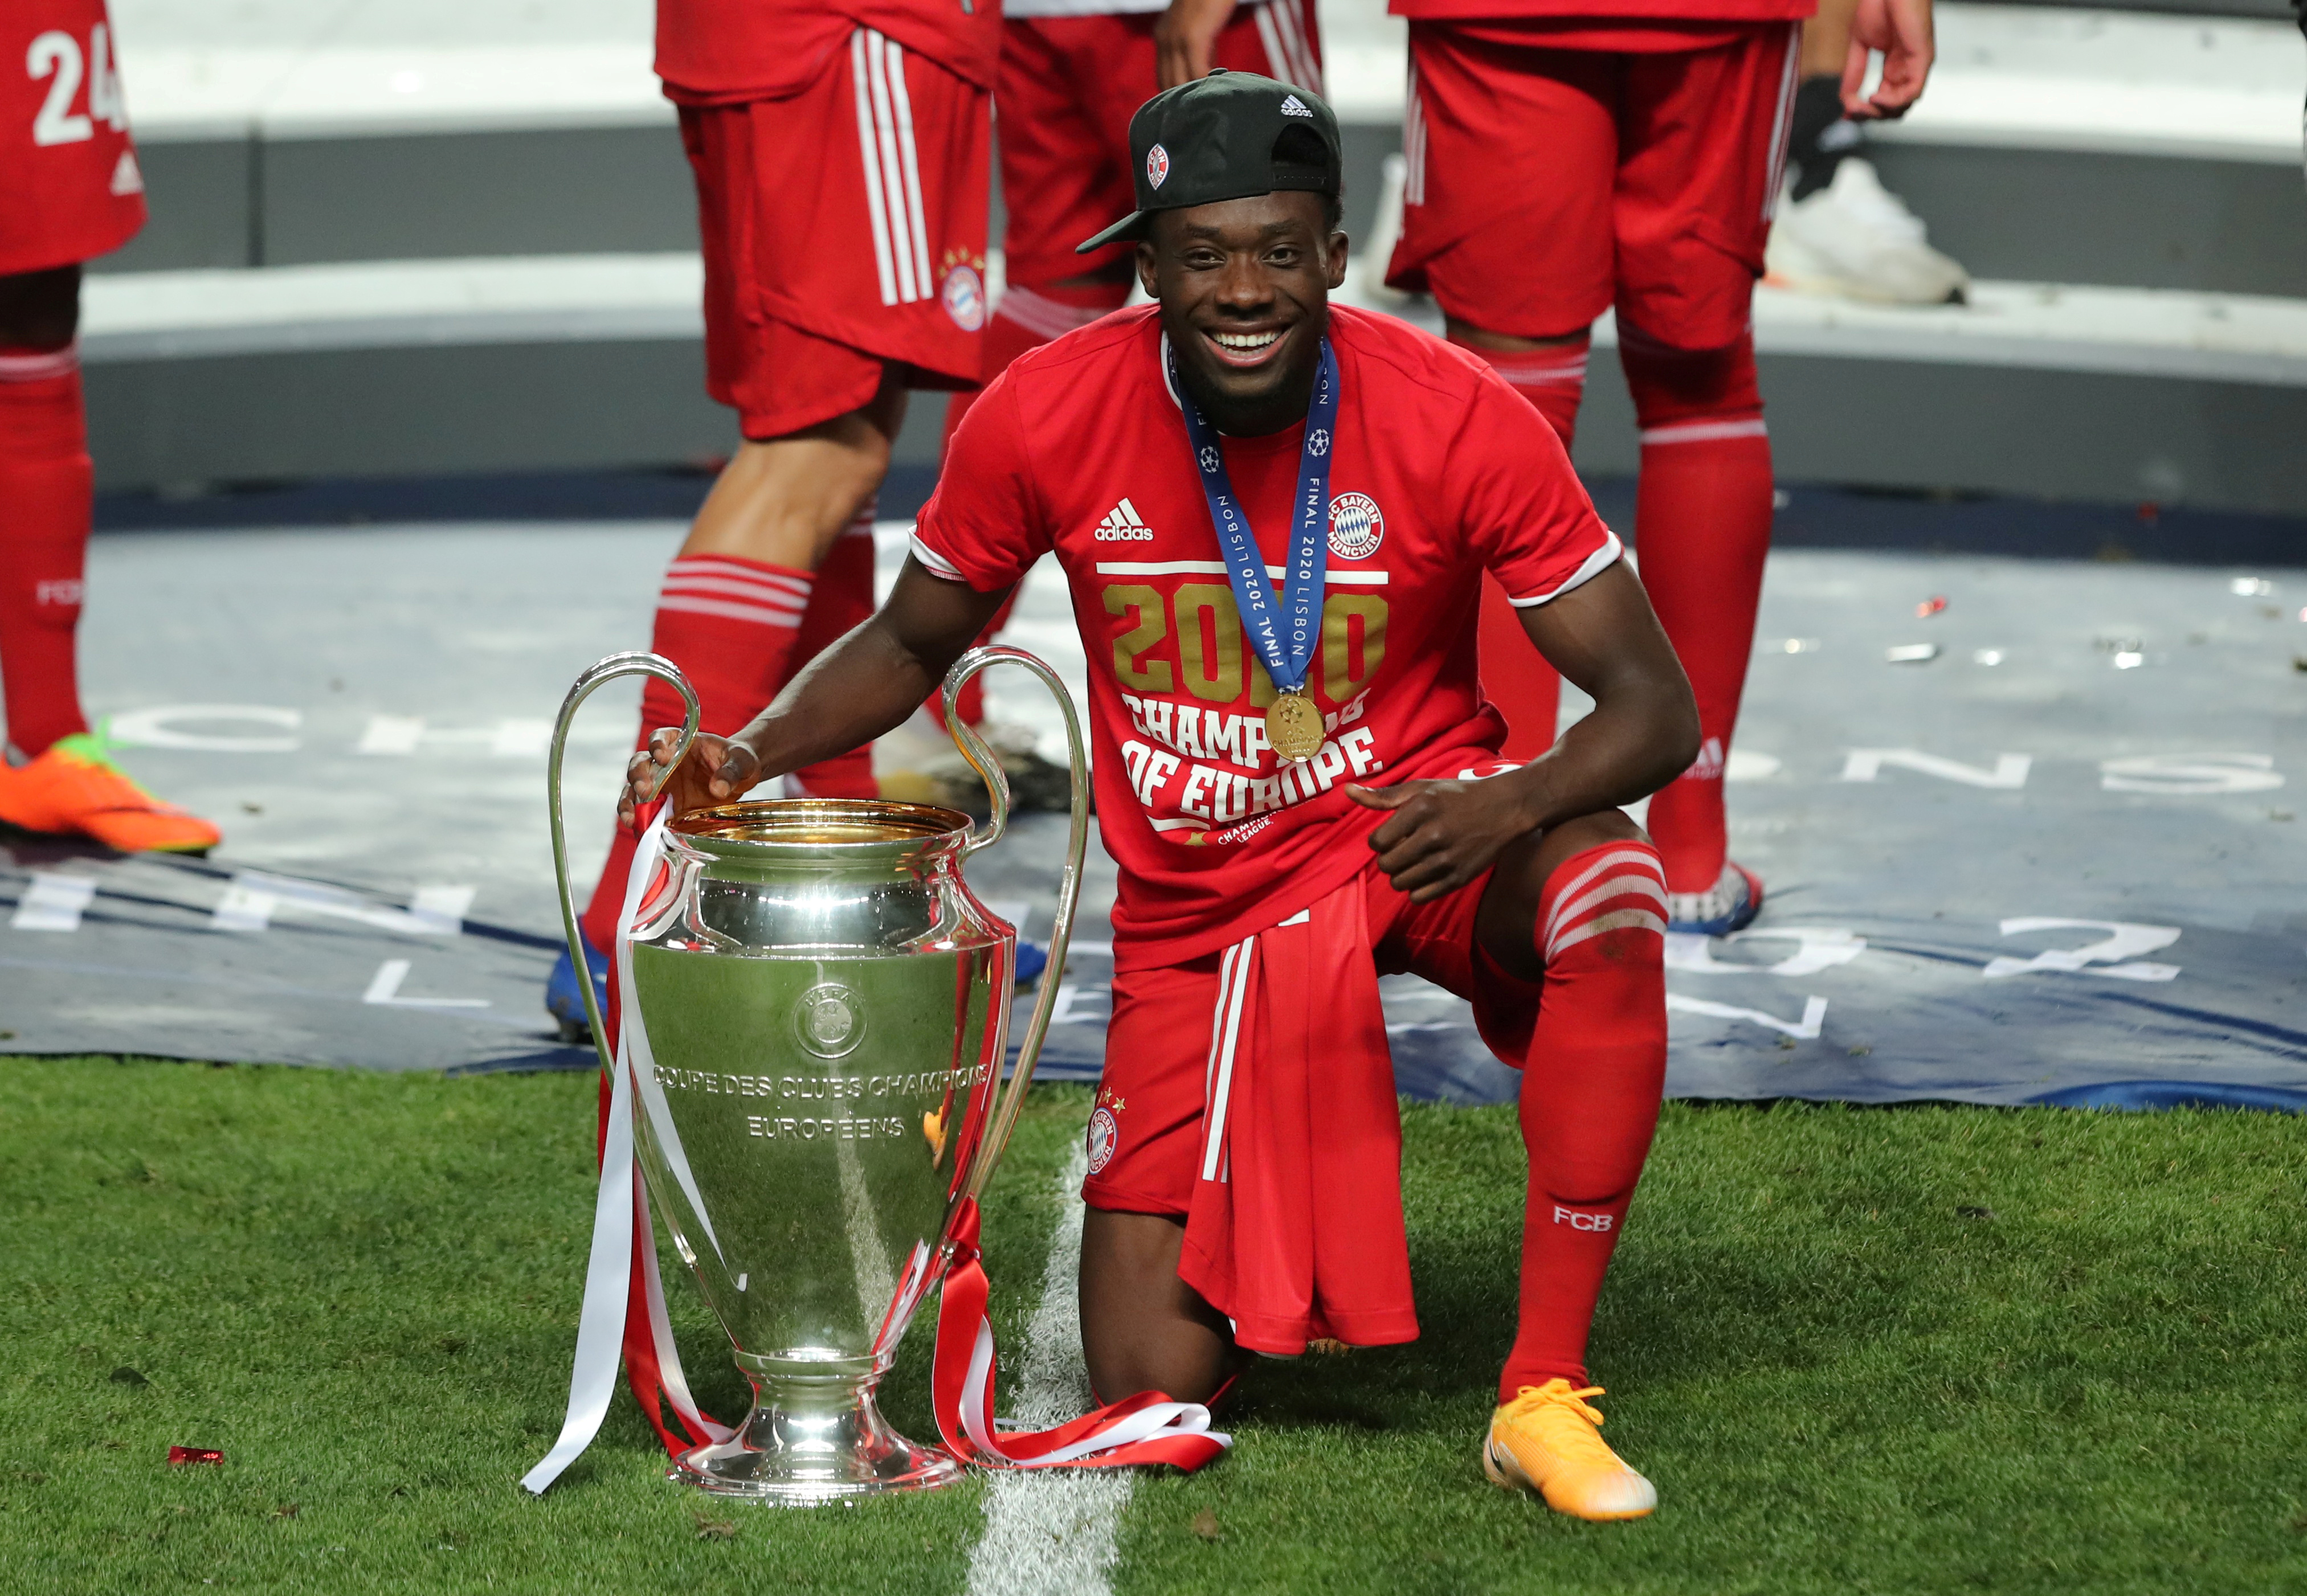 Bayern Munich's Alphonso Davies poses as he celebrates winning the Champions League with the trophy, as play resumes behind closed doors following the outbreak of the coronavirus disease (COVID-19). Photo: Reuters